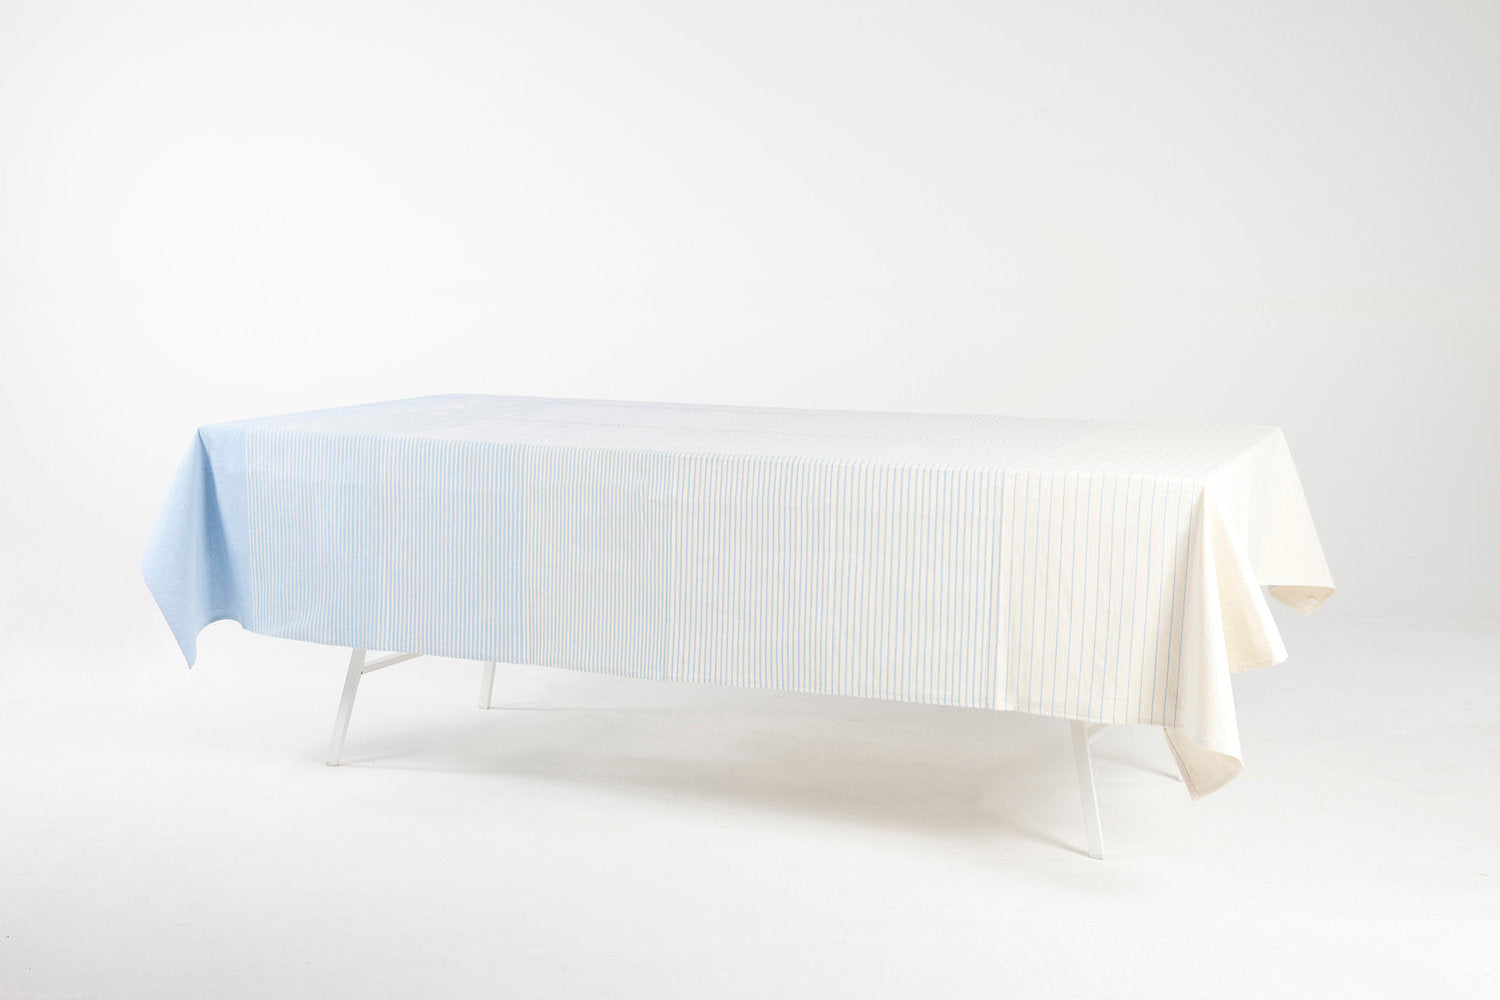 Table Cloth (large)